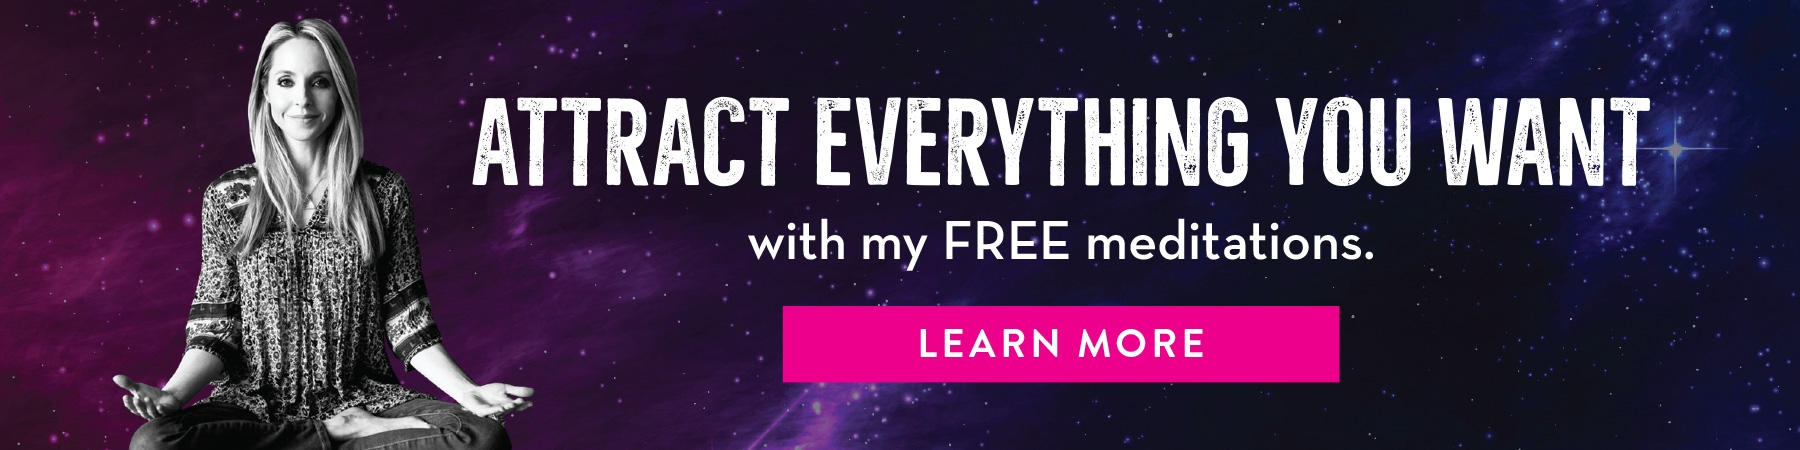 attract everything you want with gabby bernstein's free guided meditations